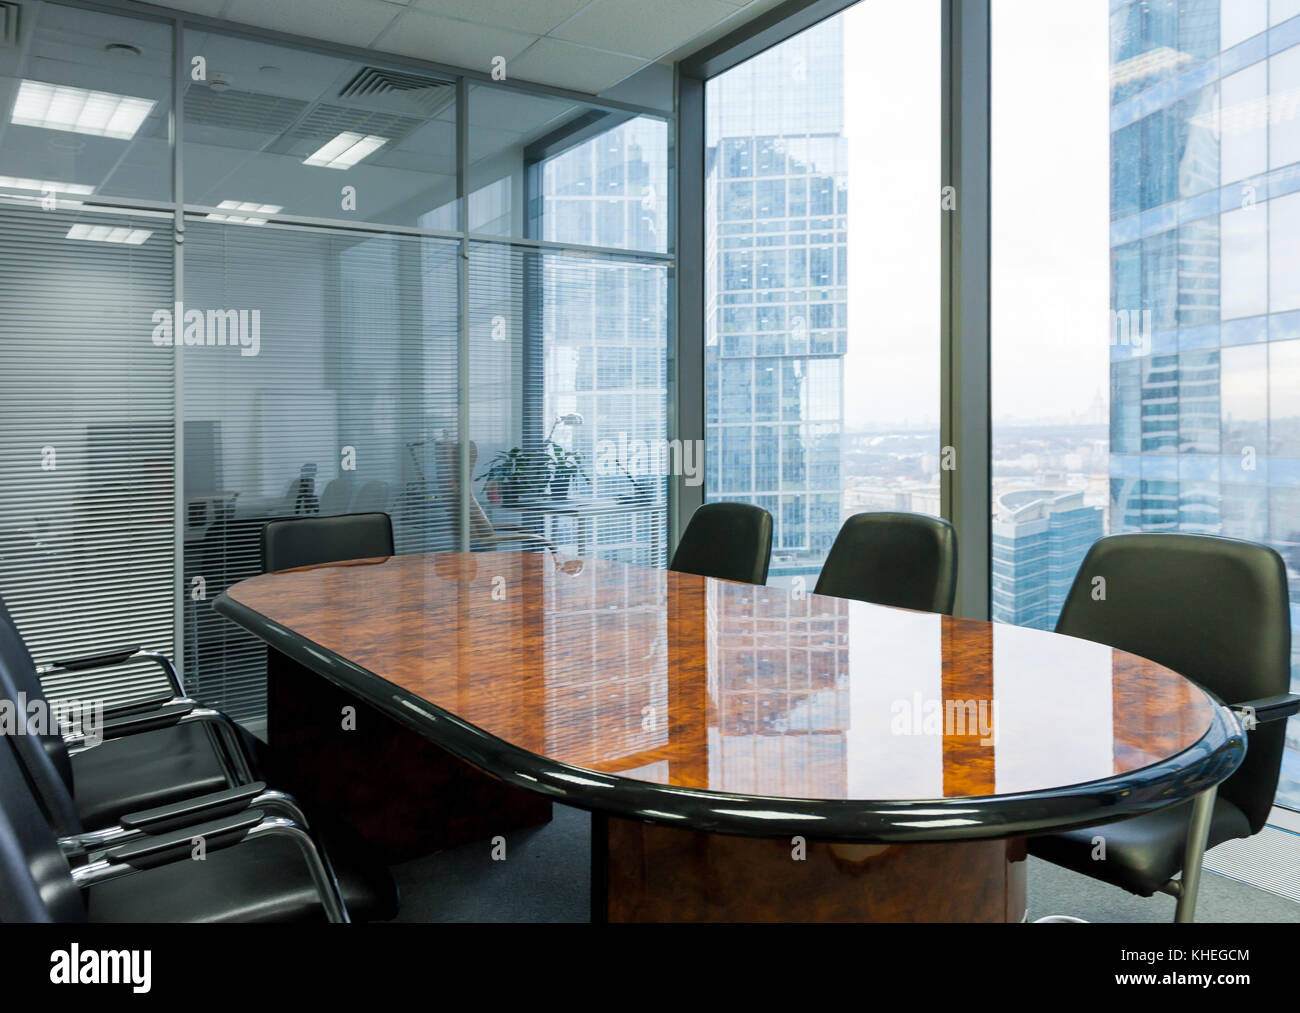 Modern meeting room in the office - Stock Image